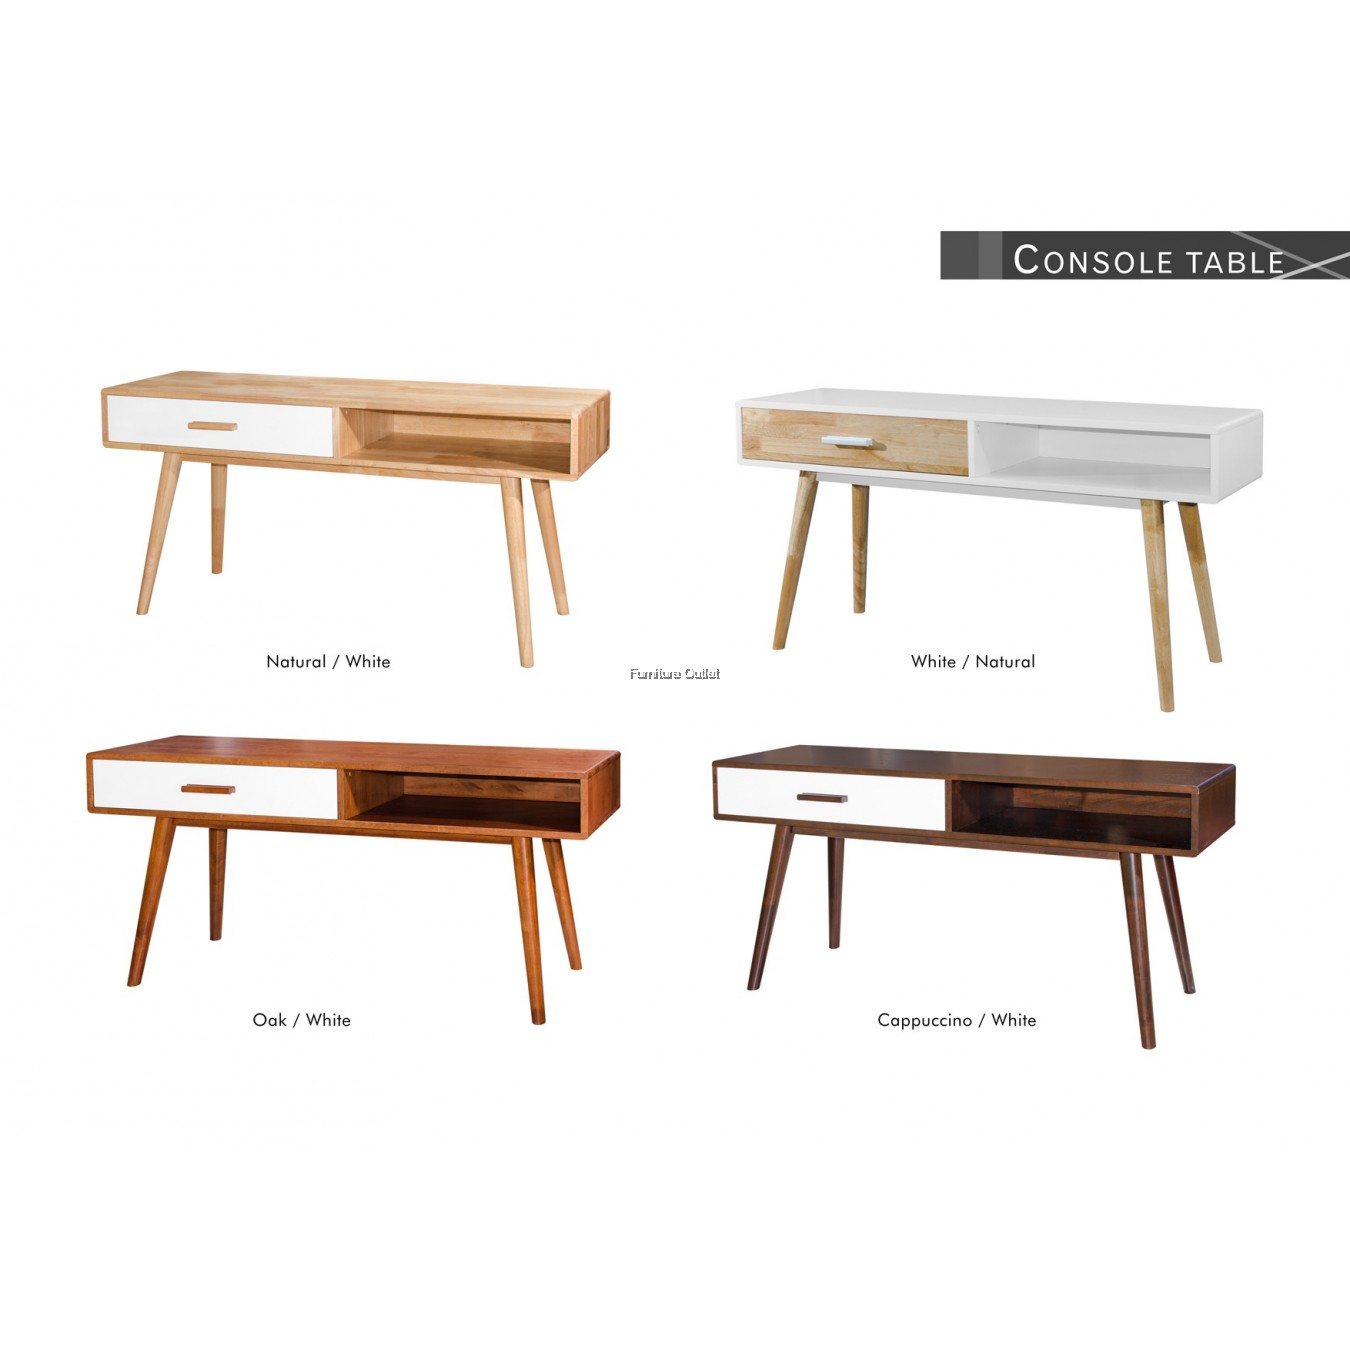 HOLLYWOOD CONSOLE TABLE 5'